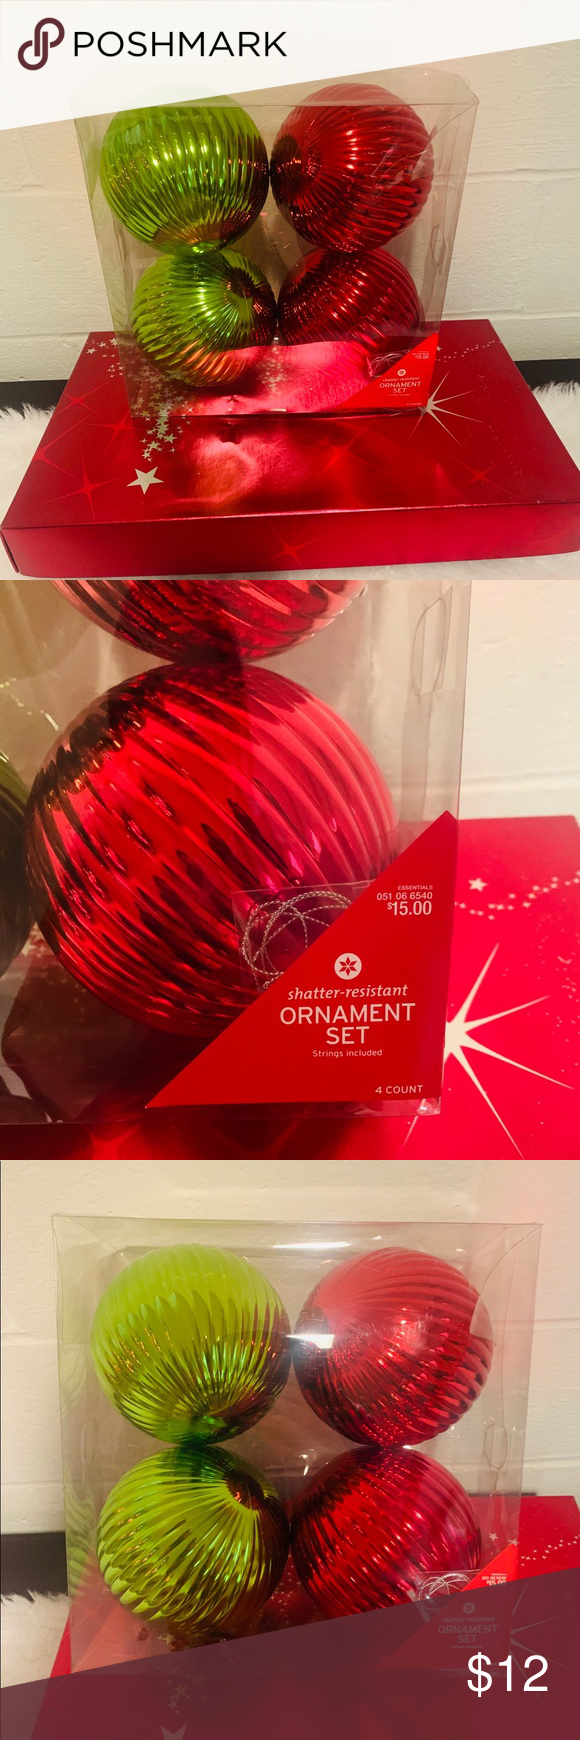 Brand new giant ornaments Target holiday, Ornament set